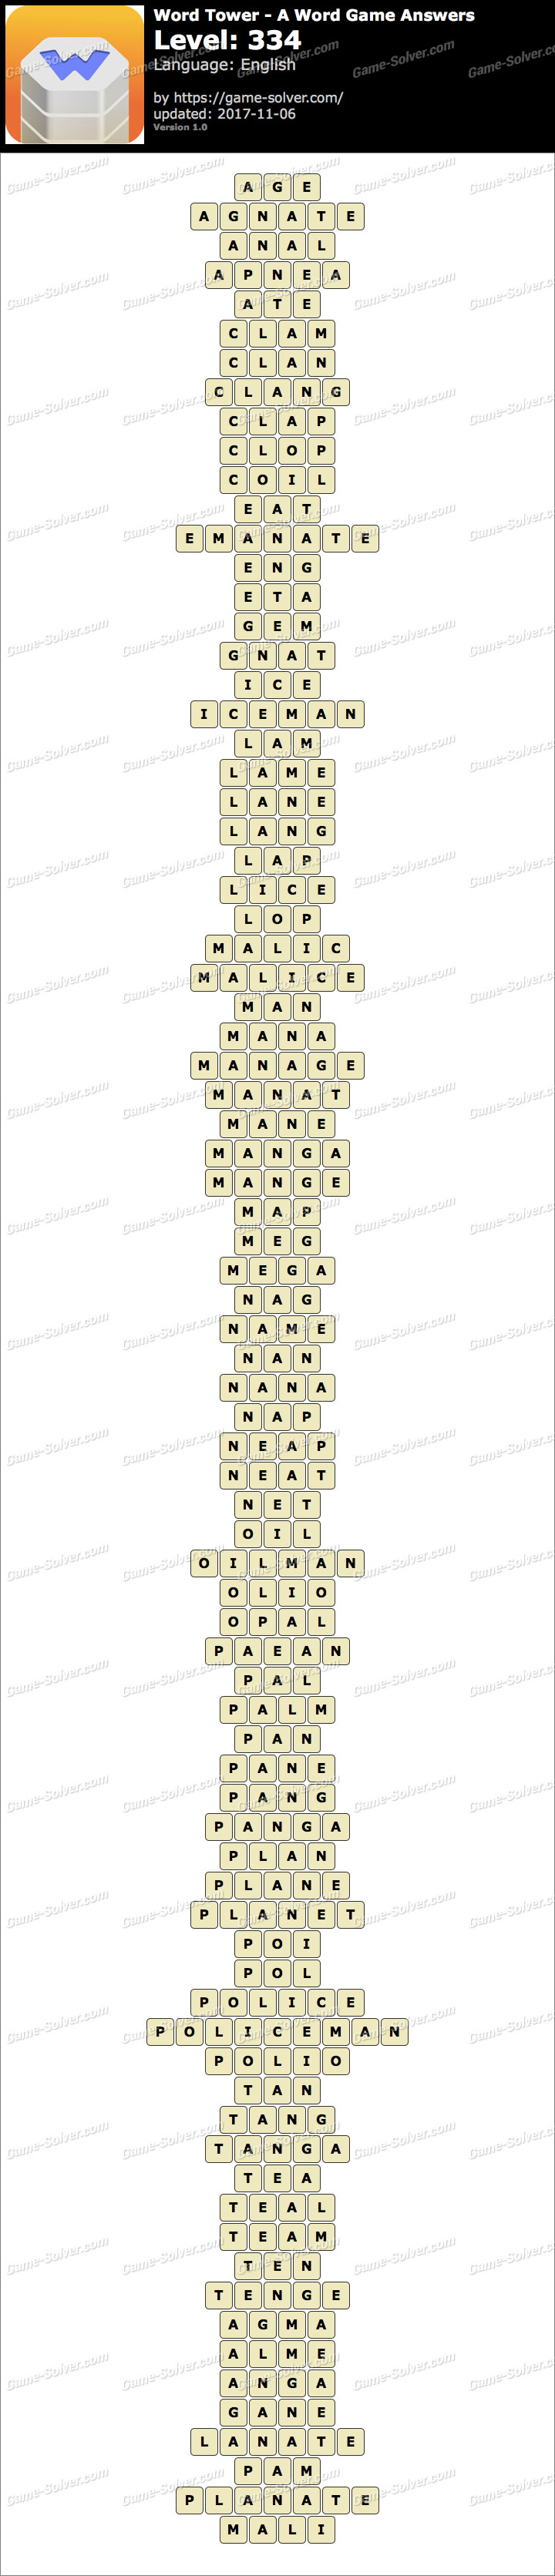 Word Tower Level 334 Answers